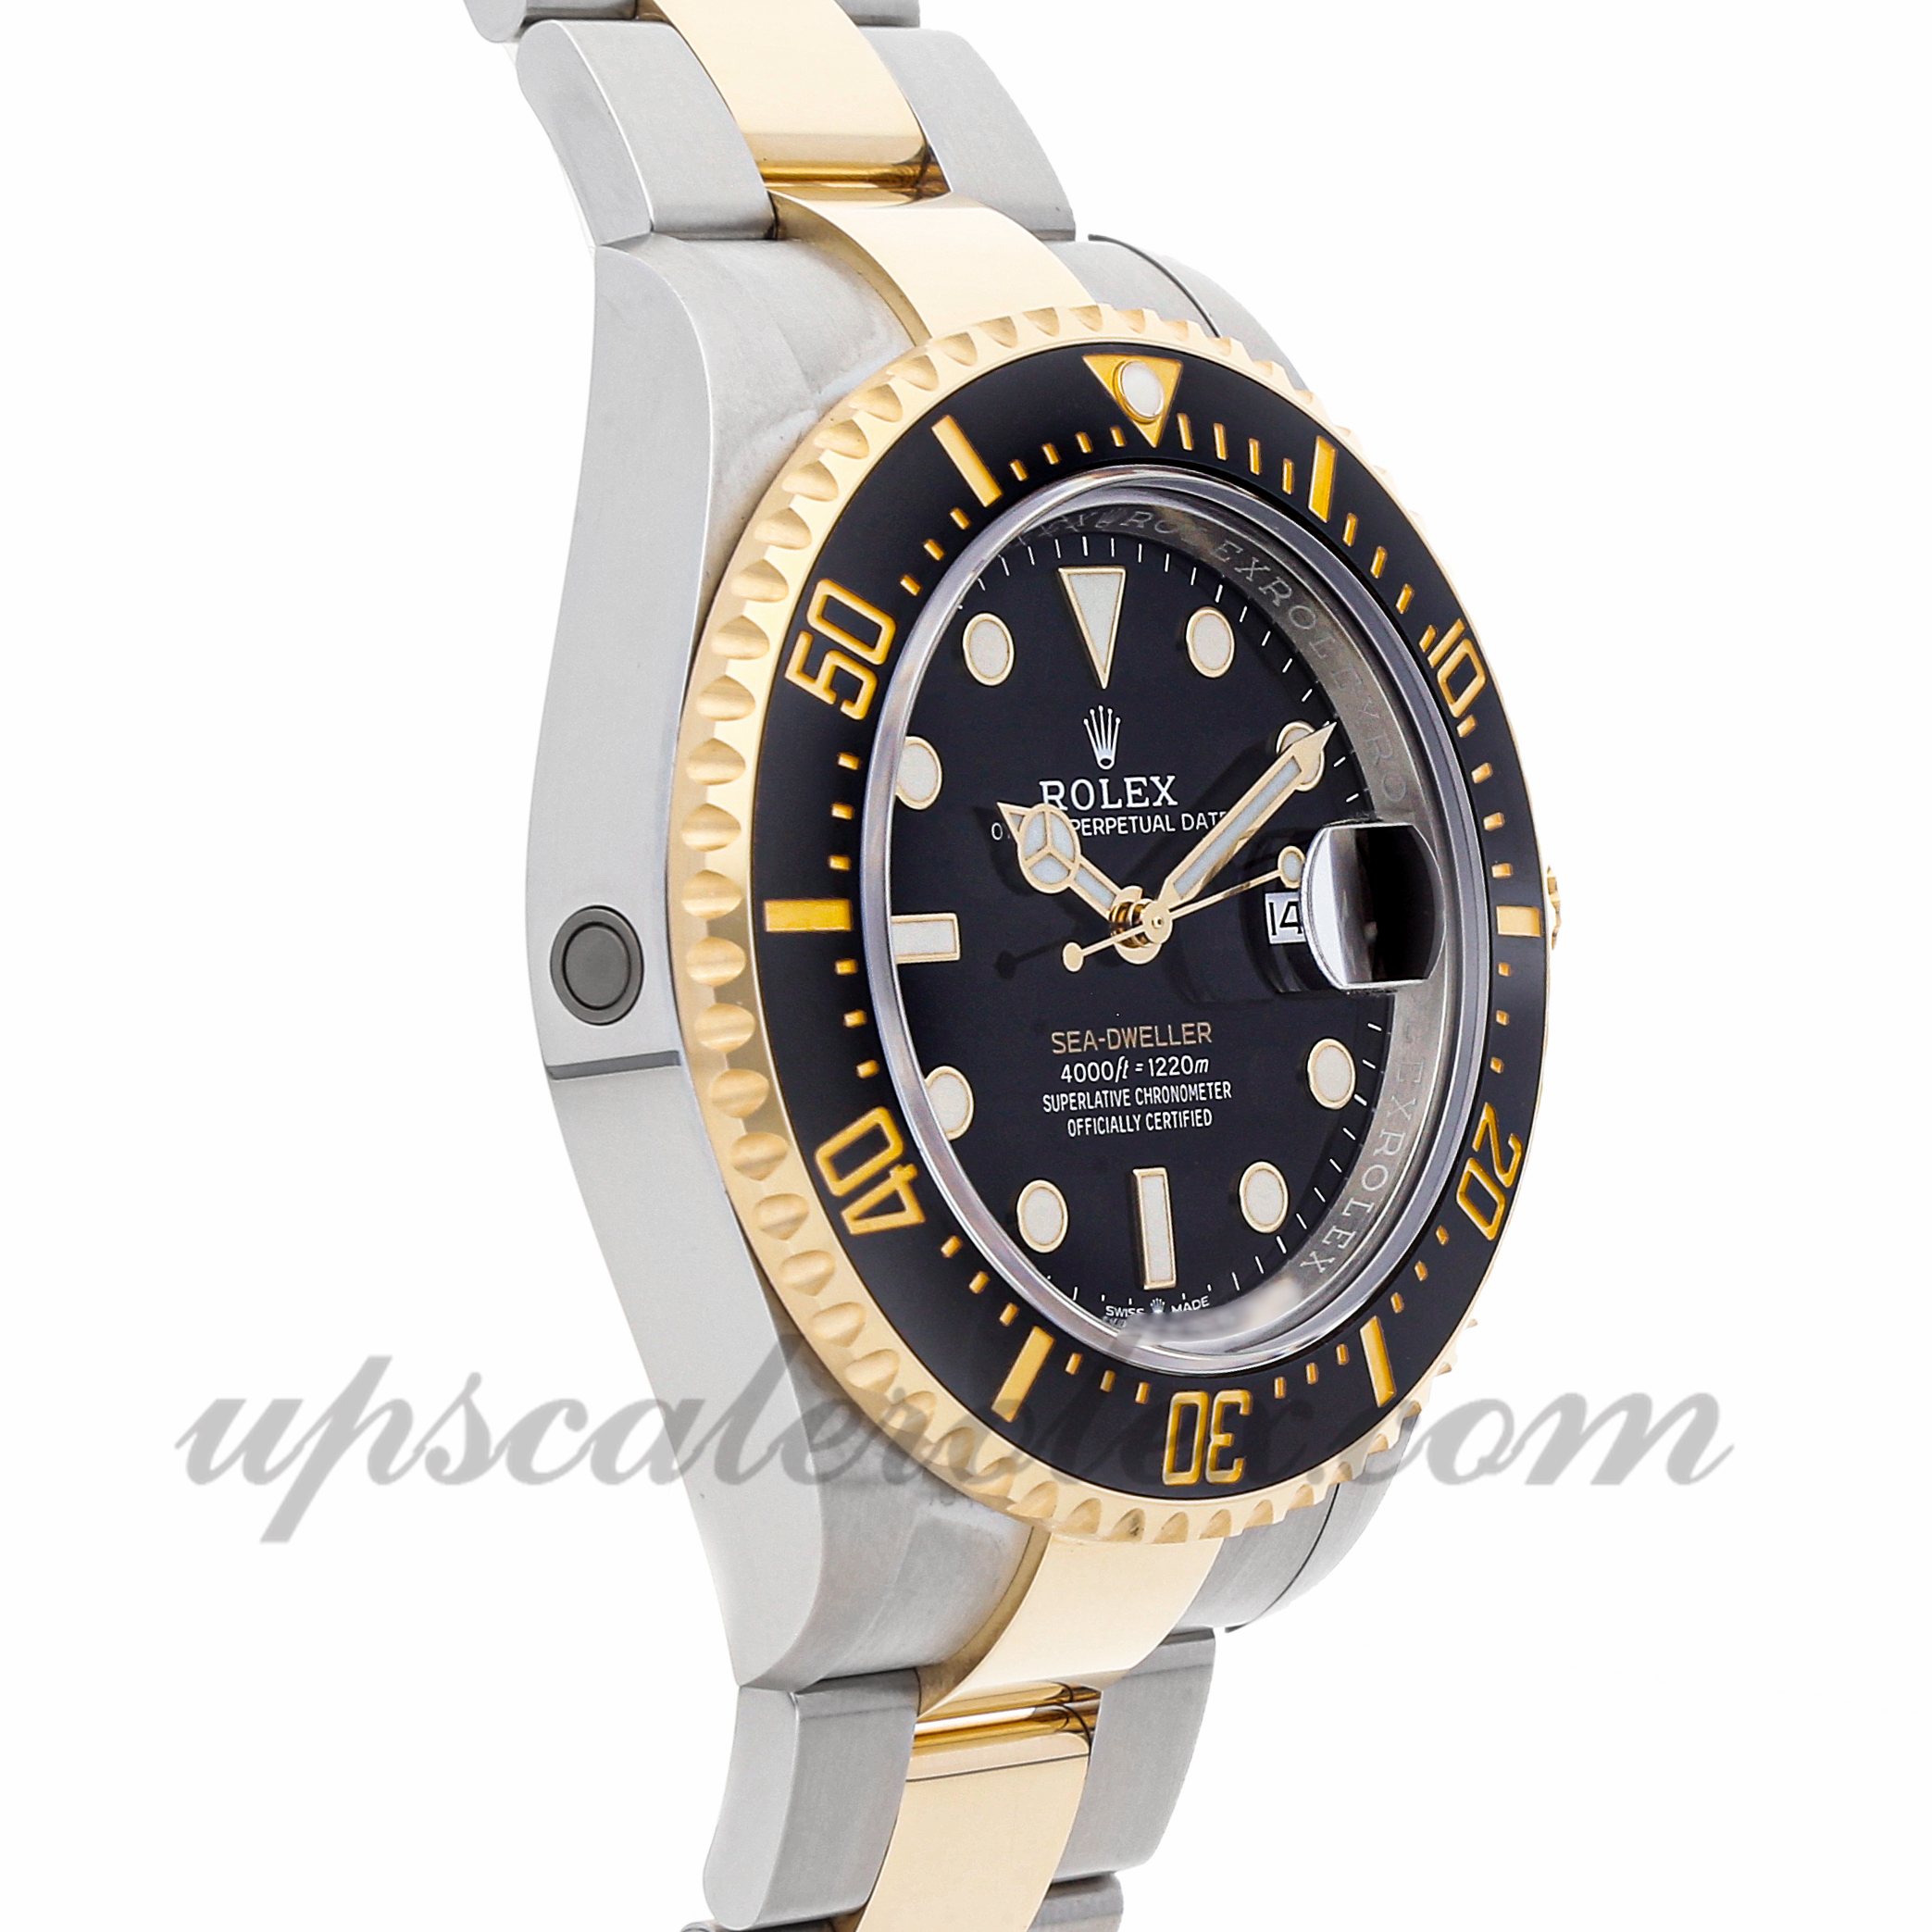 Mens Rolex Sea,dweller 126603 43mm Case Mechanical (Automatic) Movement  Black Dial